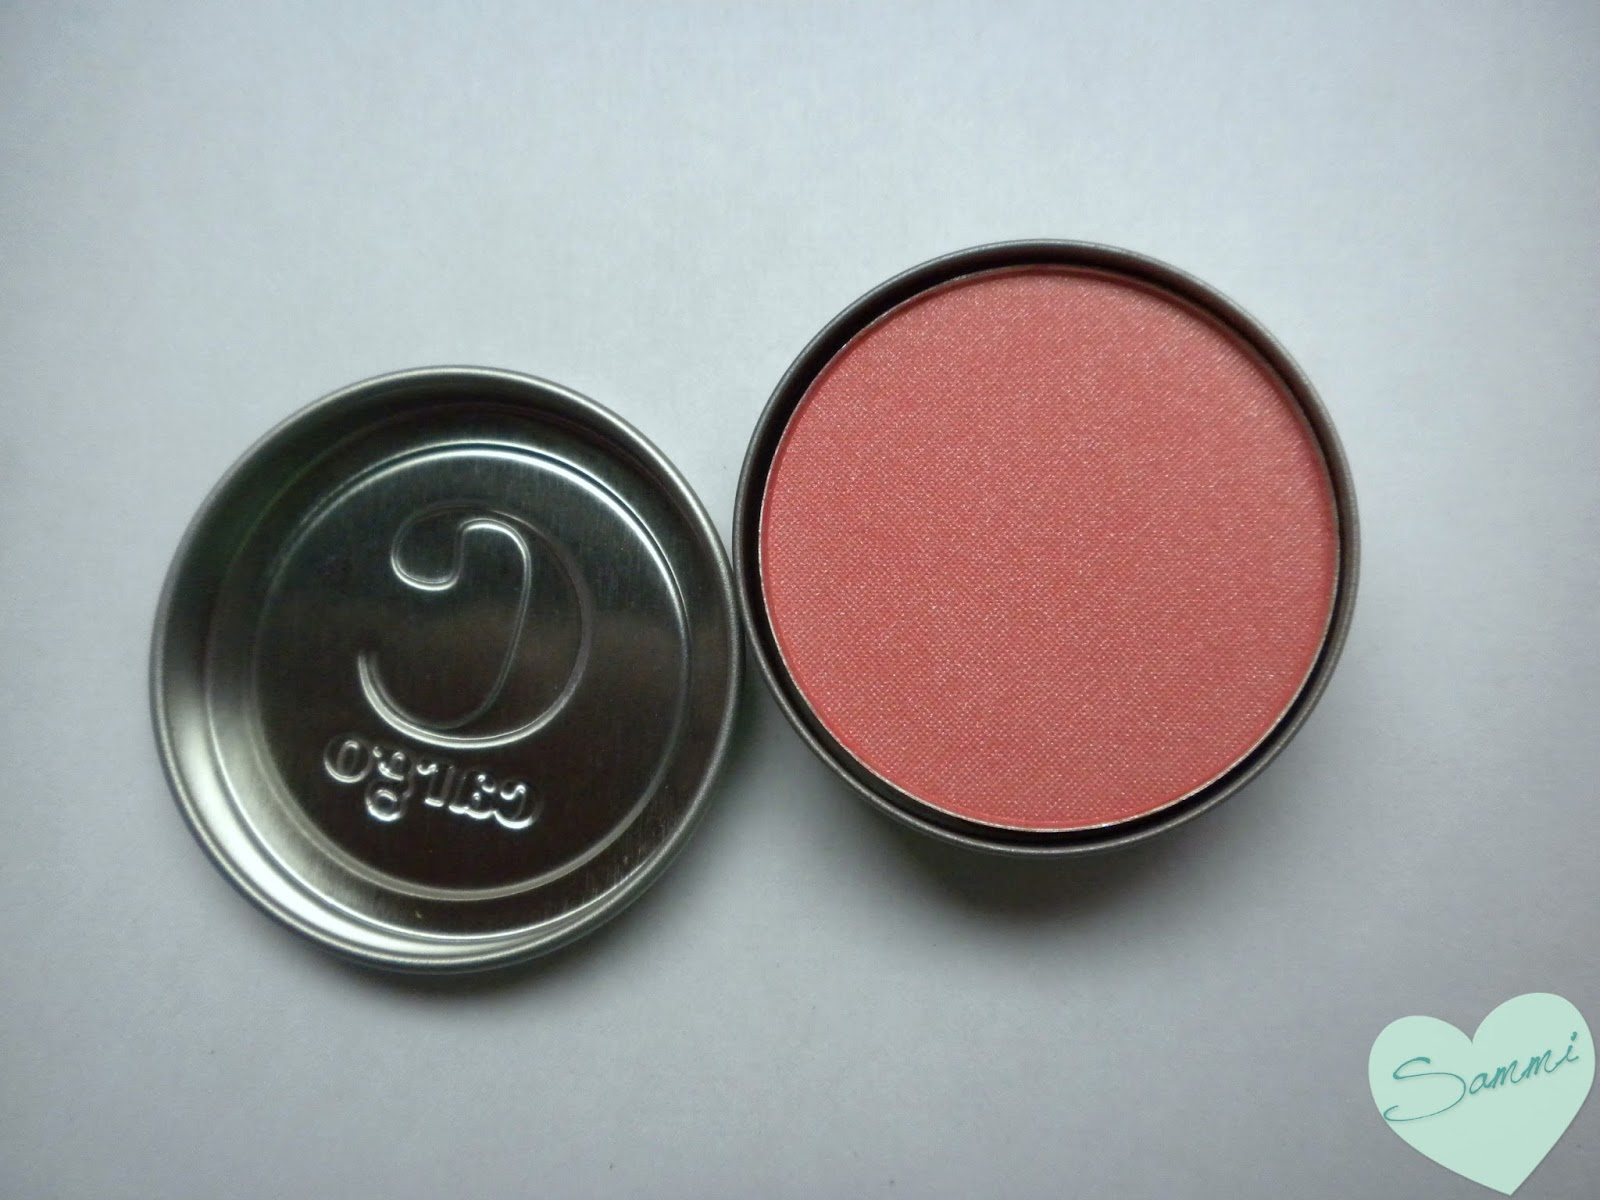 CARGO Swimmables Water Resistant Blush in Los Cabos